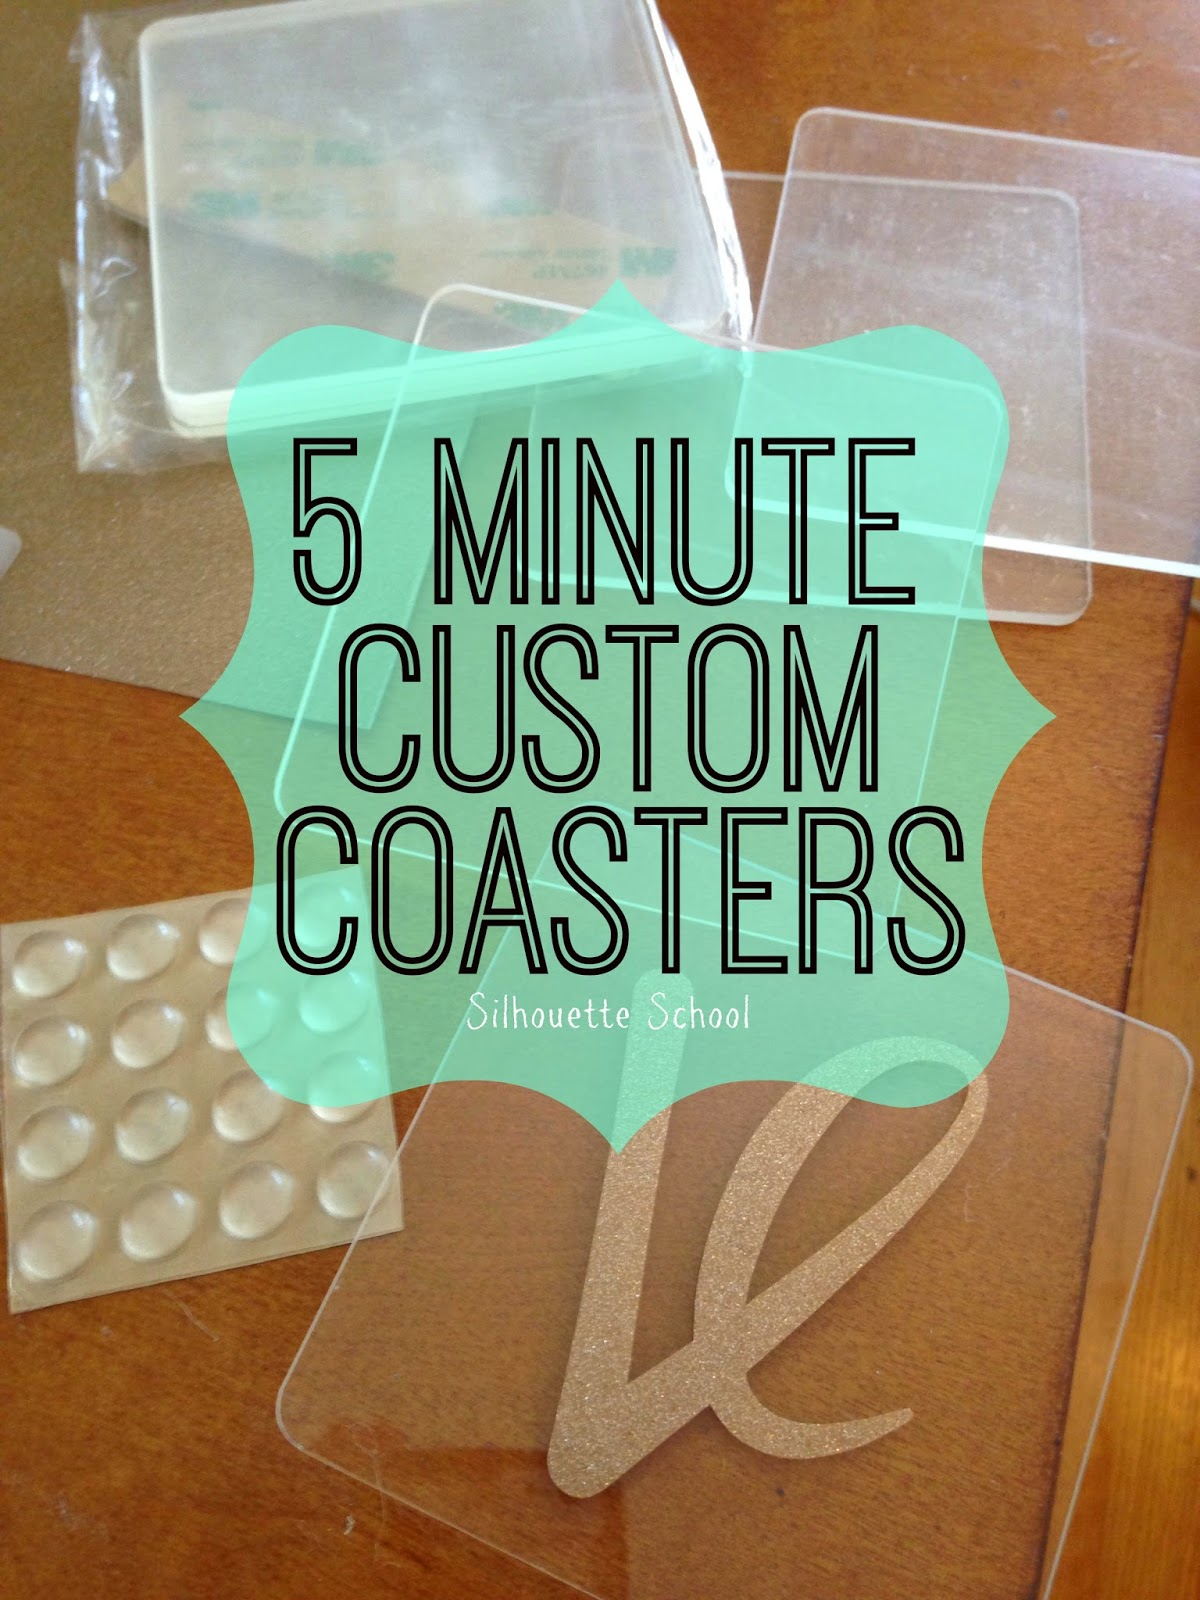 Silhouette tutorial, custom coasters, DIY, do it yourself